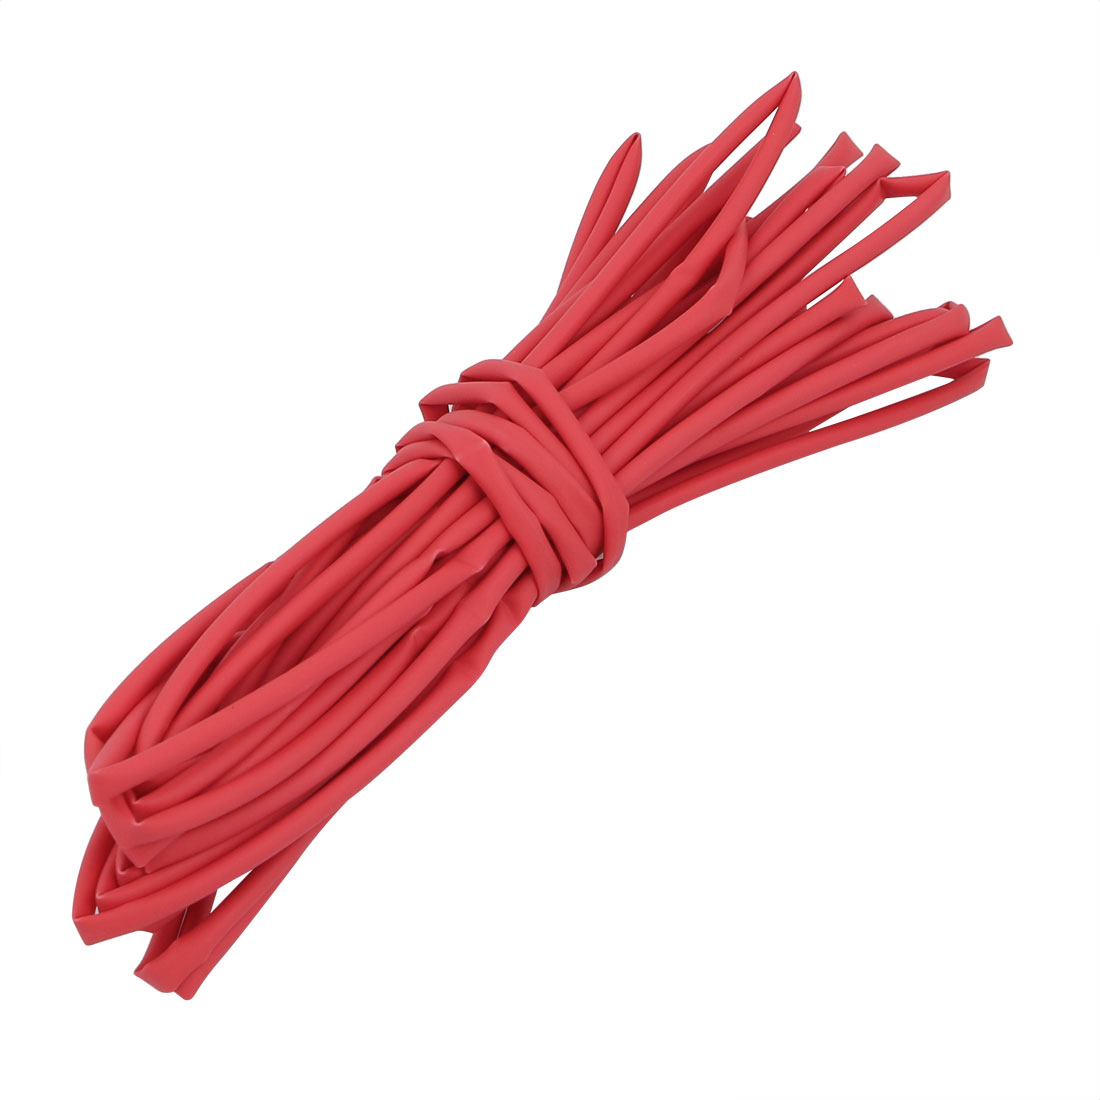 5M Long 1.5mm Inner Dia. Polyolefin Heat Shrinkable Tube Red for Wire Repairing